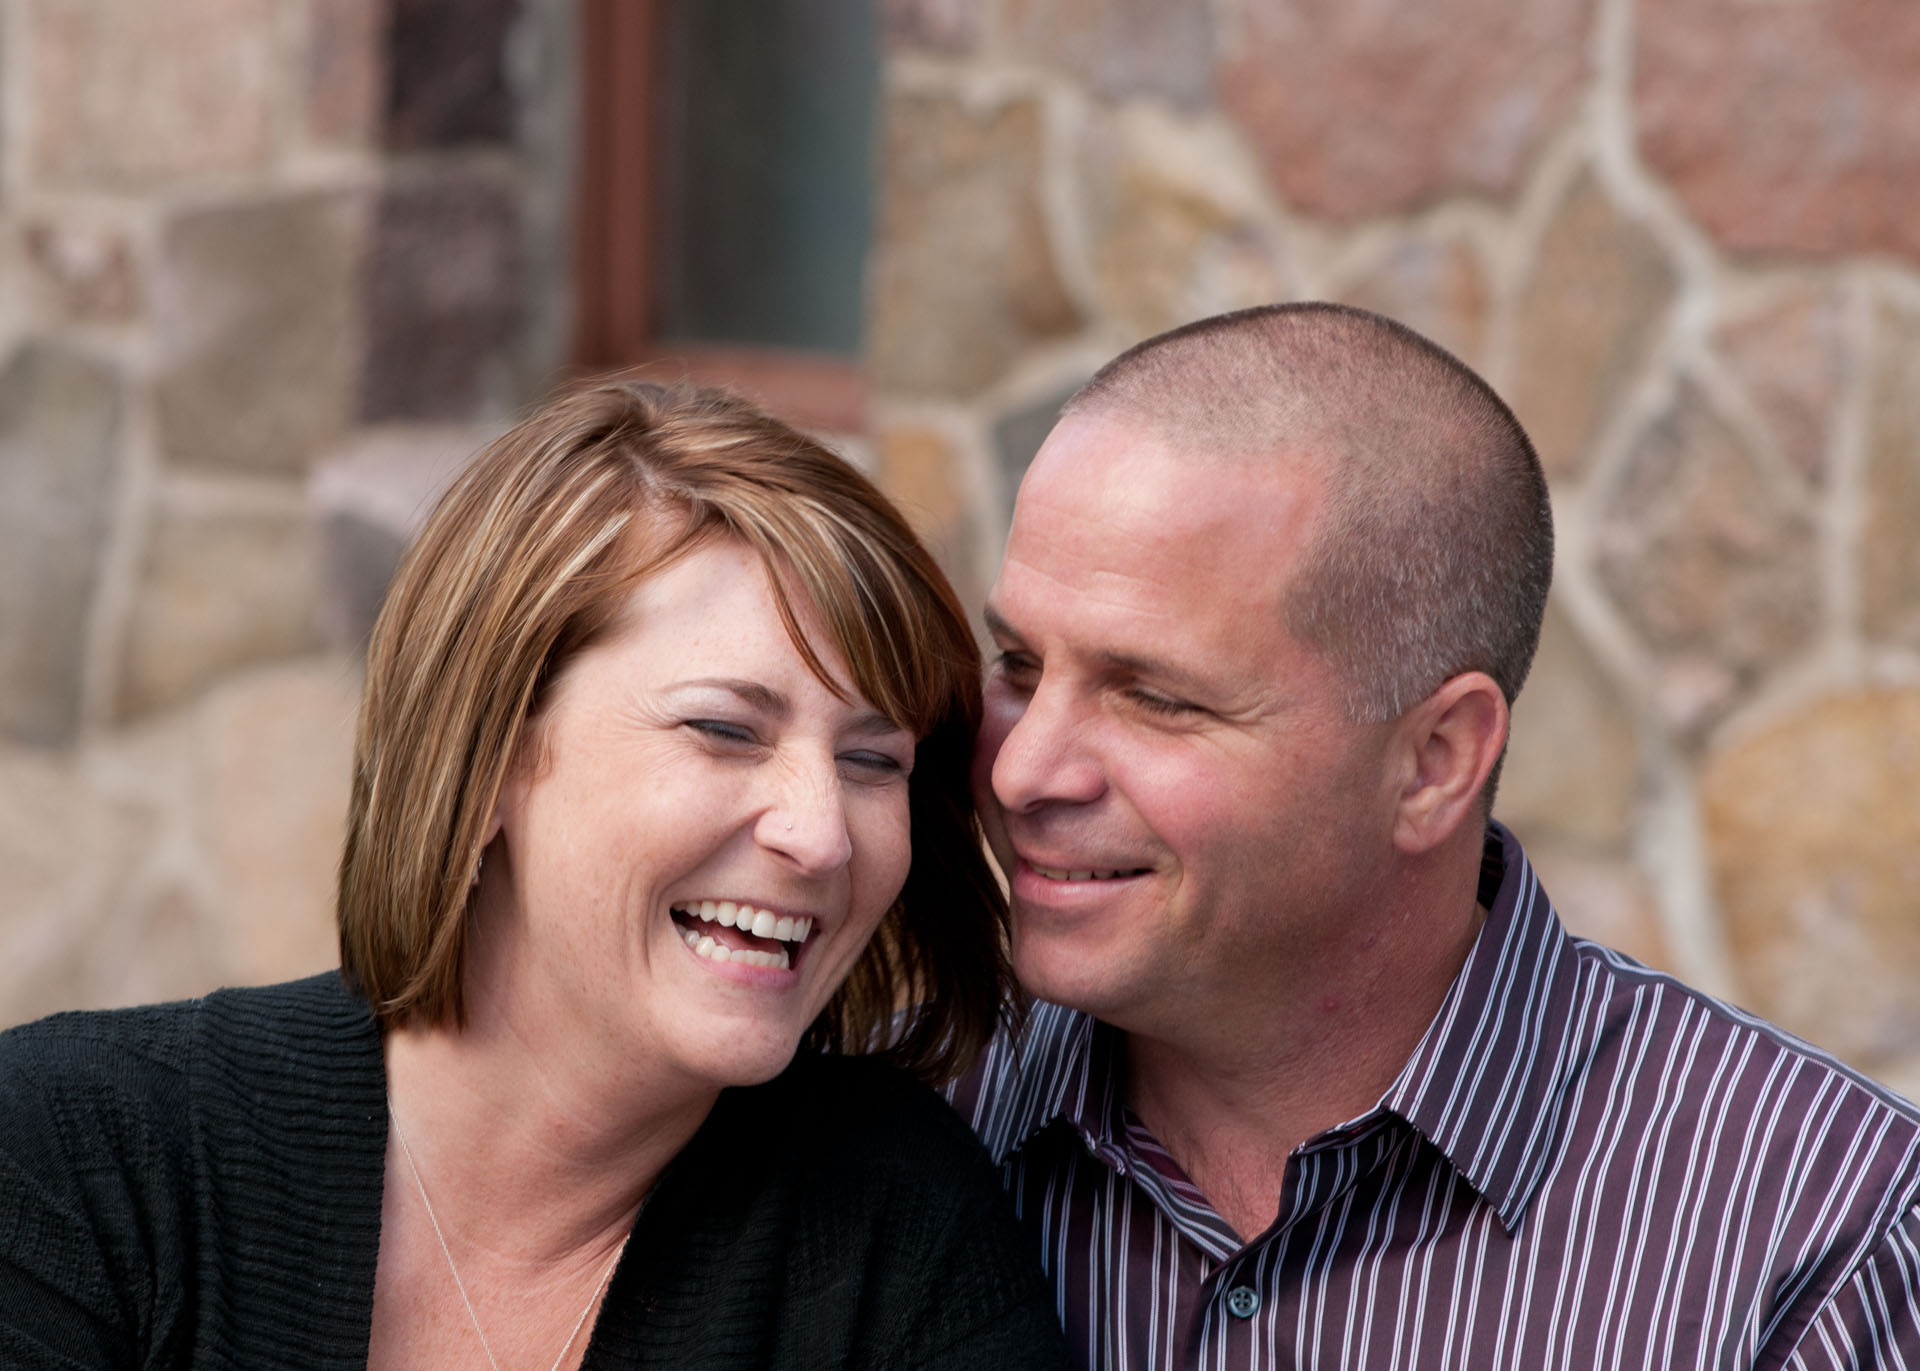 Family portrait session by Addie Lane Studios included portraits of this newly engaged couple.